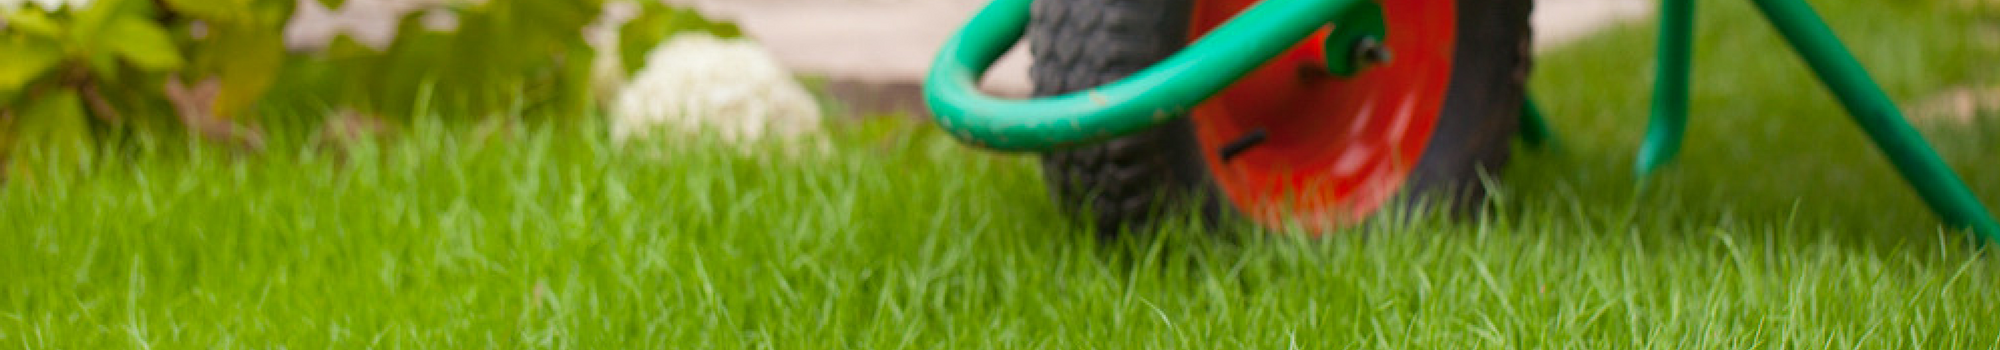 Mississauga |  Lawn Technicians Needed! - Featured Image